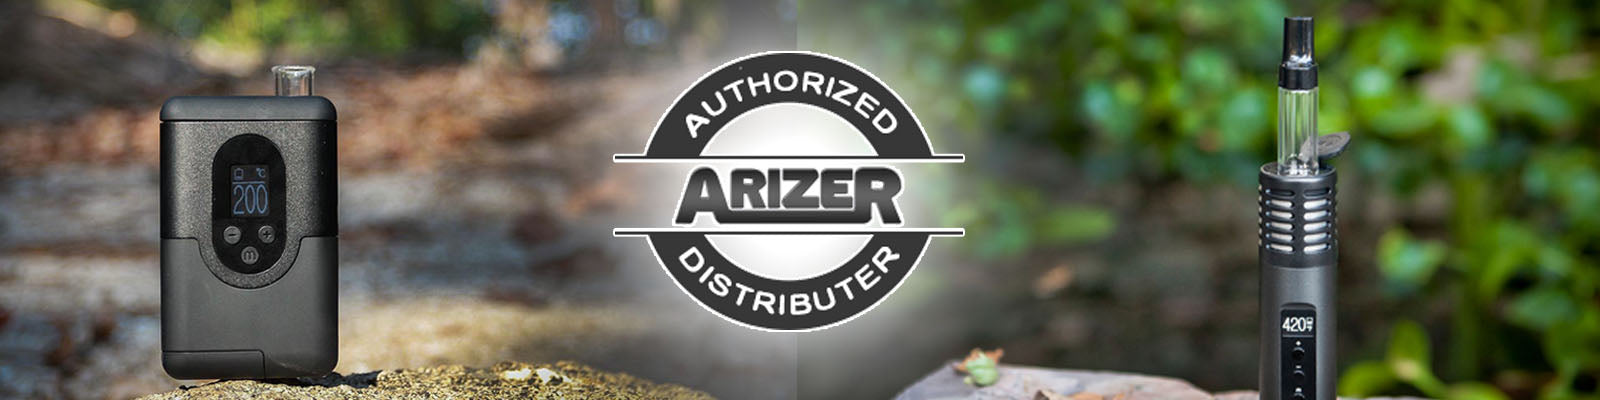 Arizer Vaporizers - Free Shipping & Best Price - Authorized Sellers - Canada